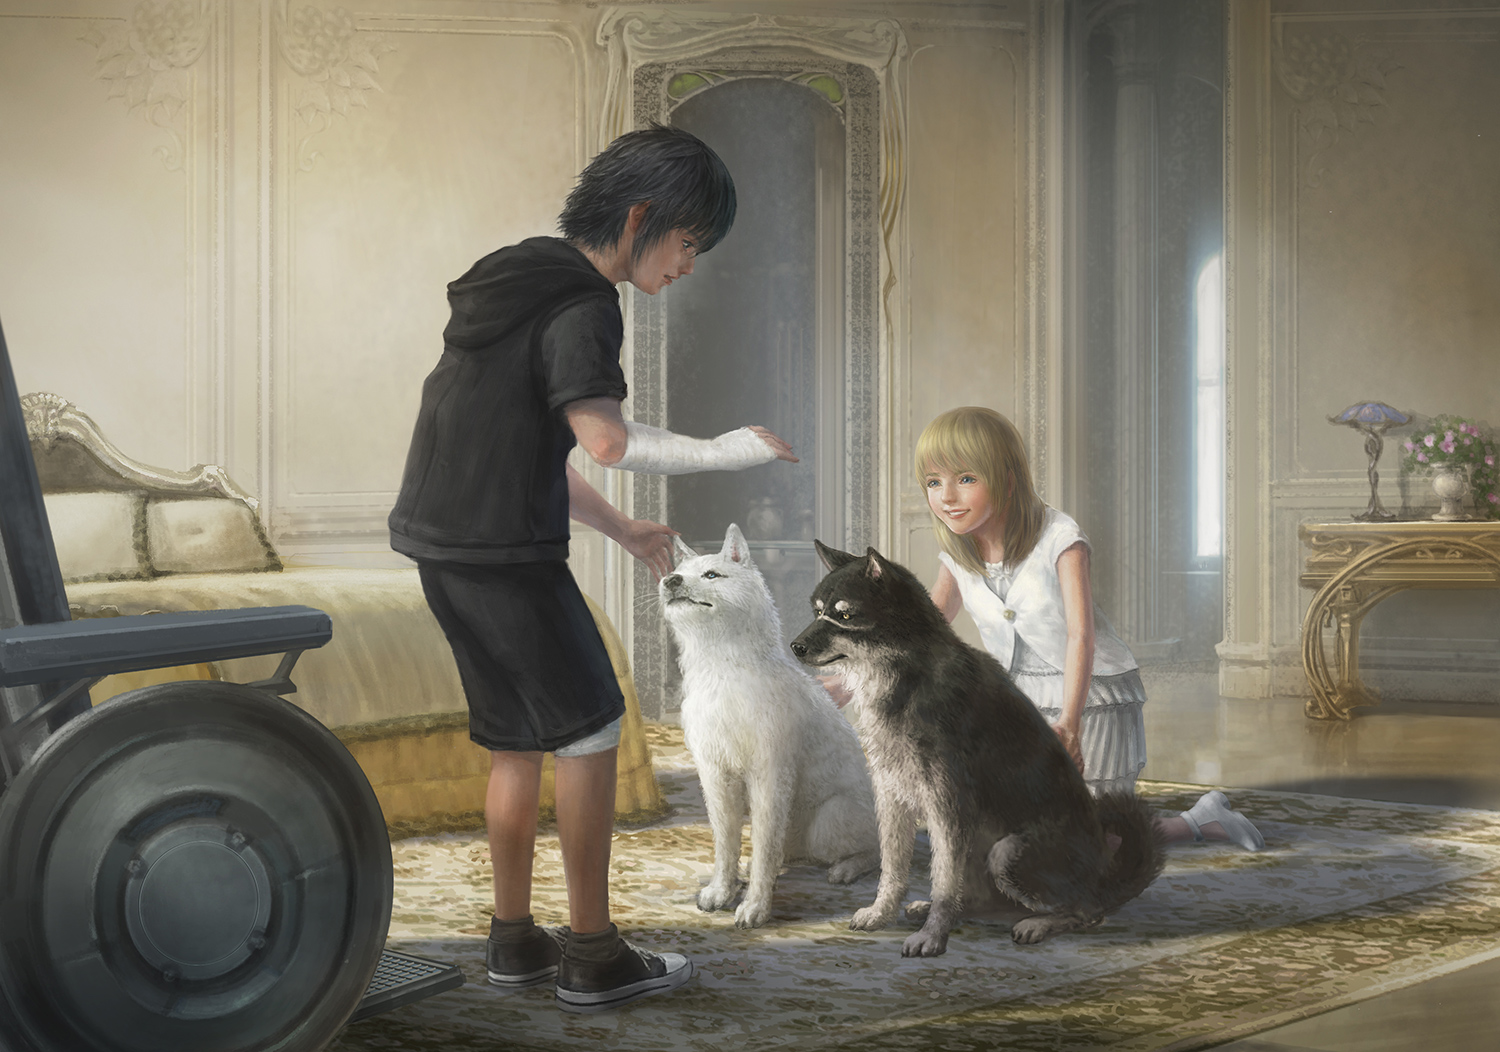 final-fantasy-xv-noctis-luna-artwork